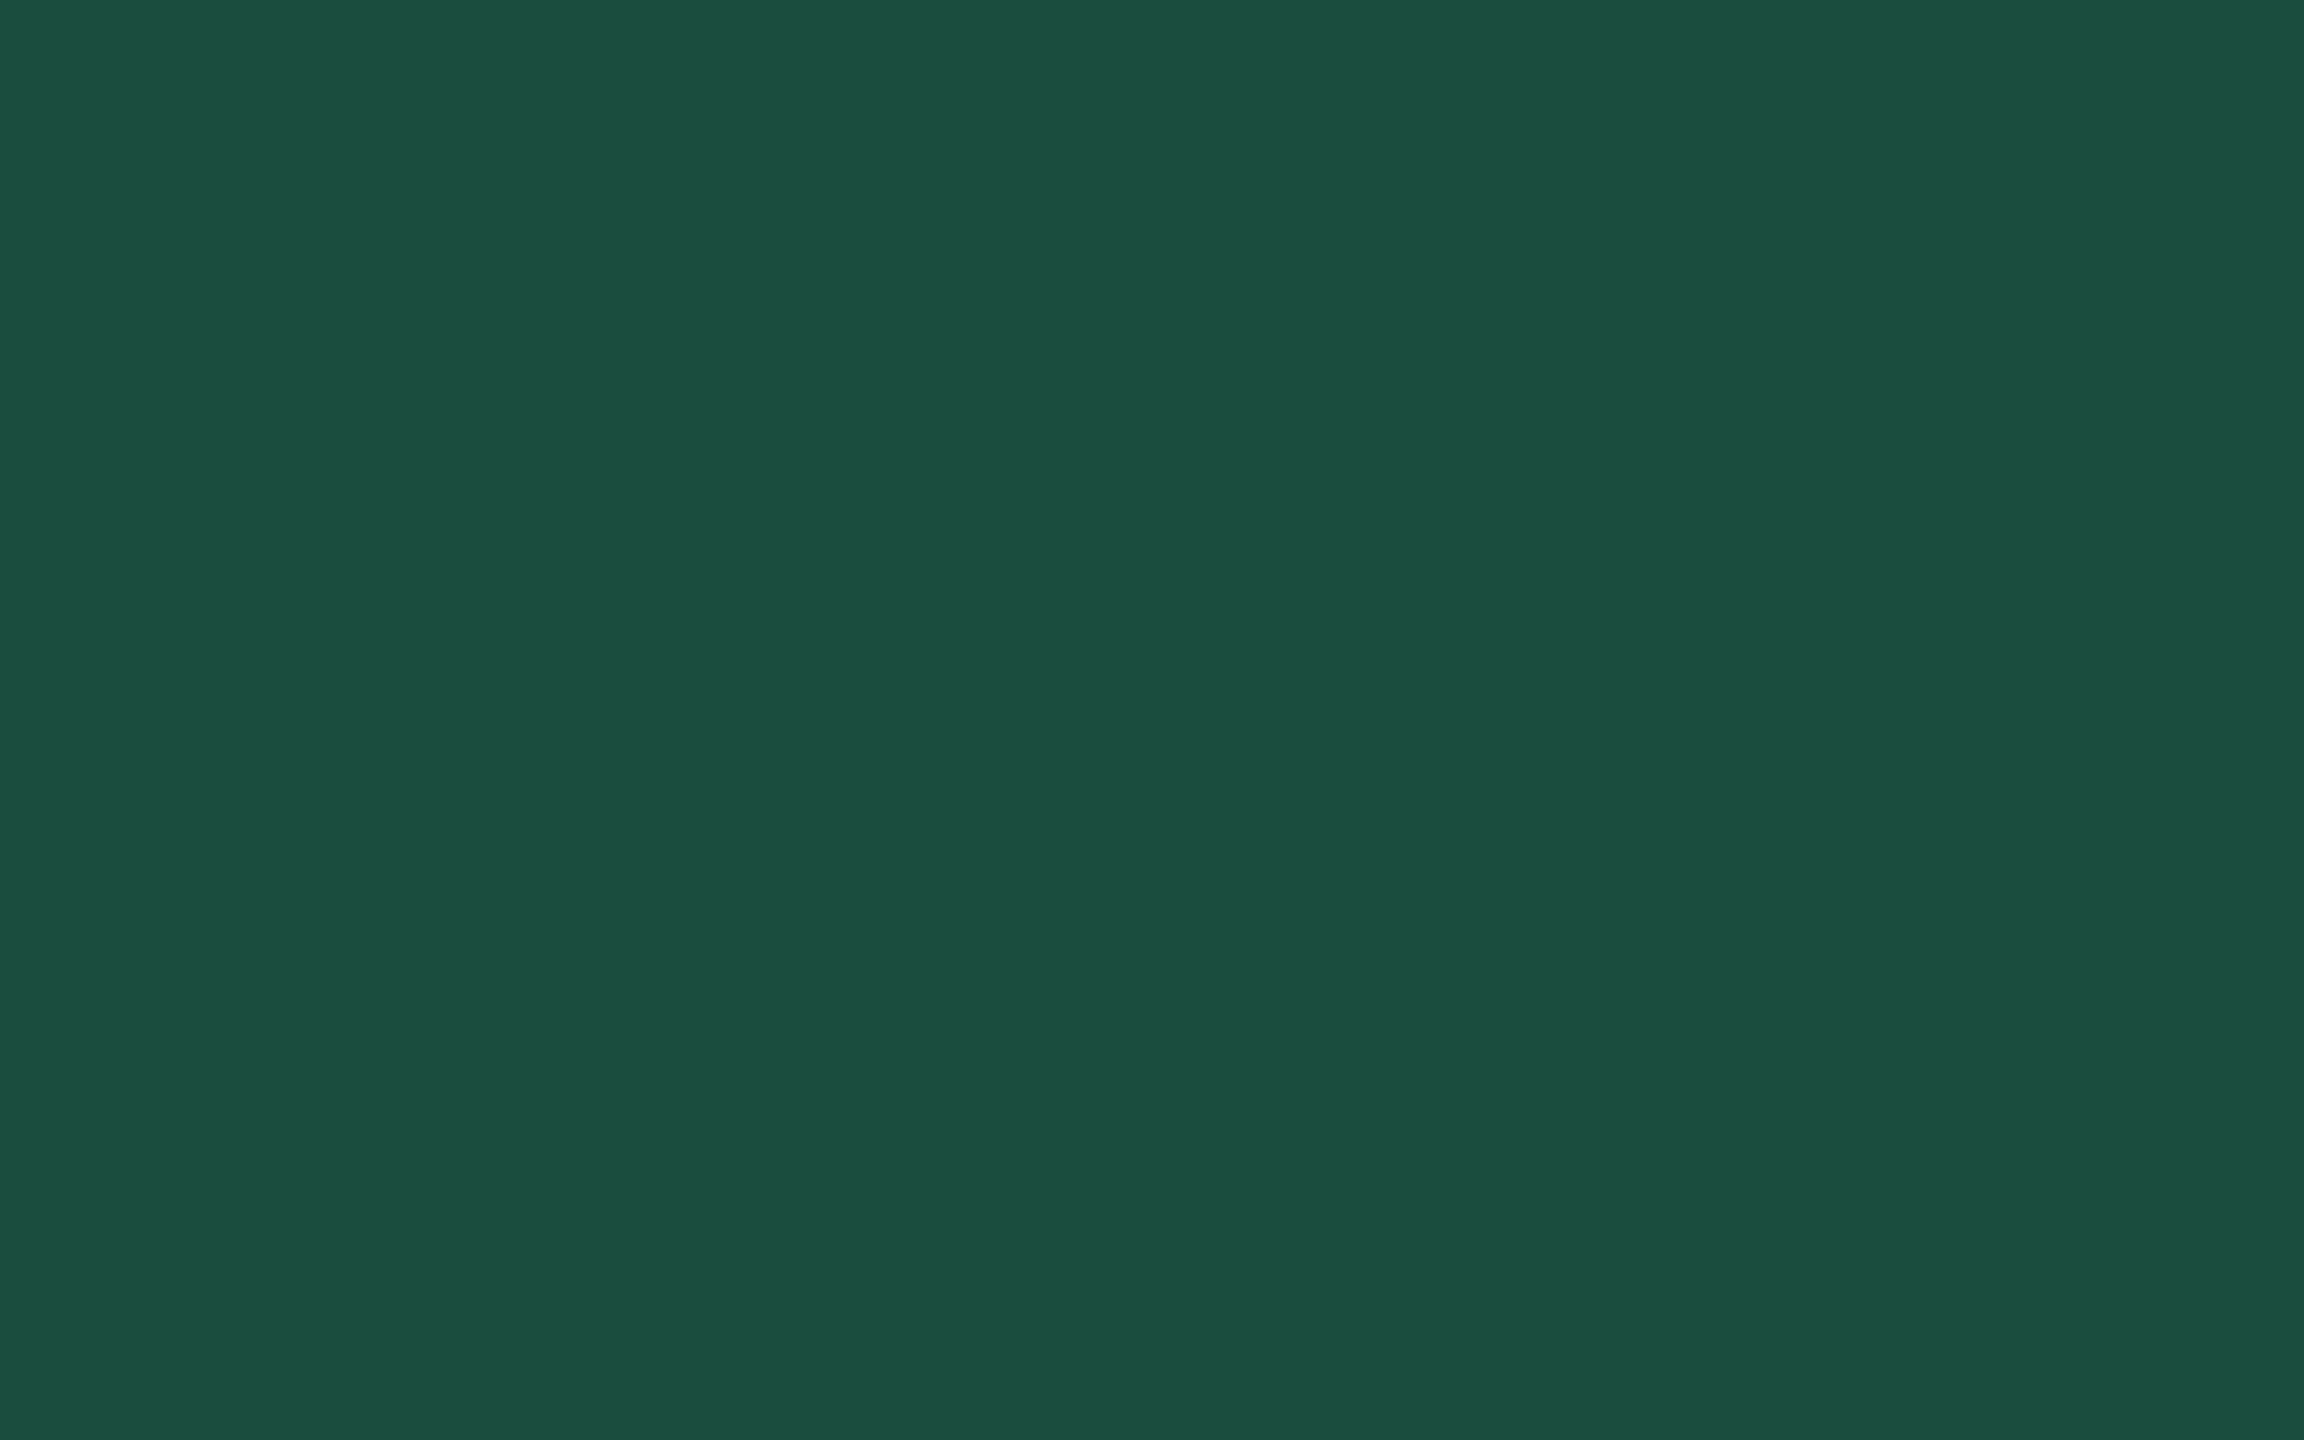 2304x1440 Brunswick Green Solid Color Background